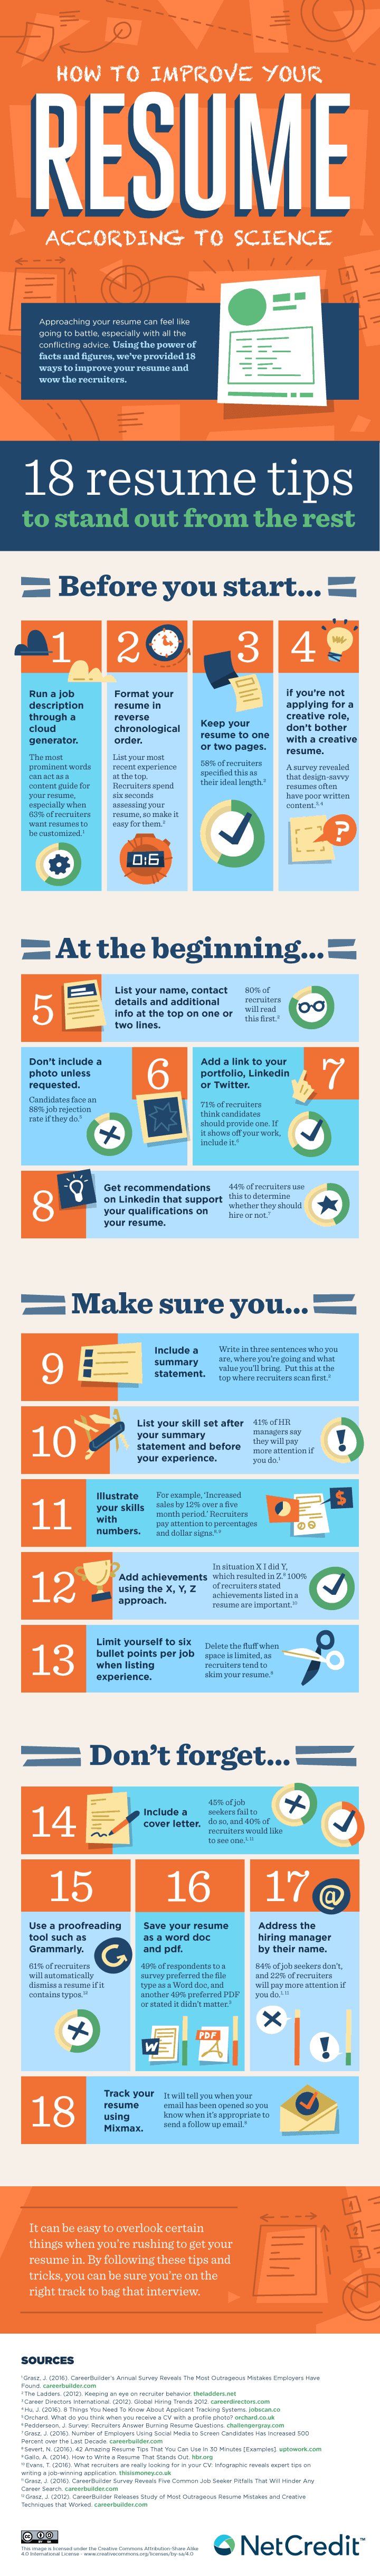 building the ultimate resume using science daily infographic